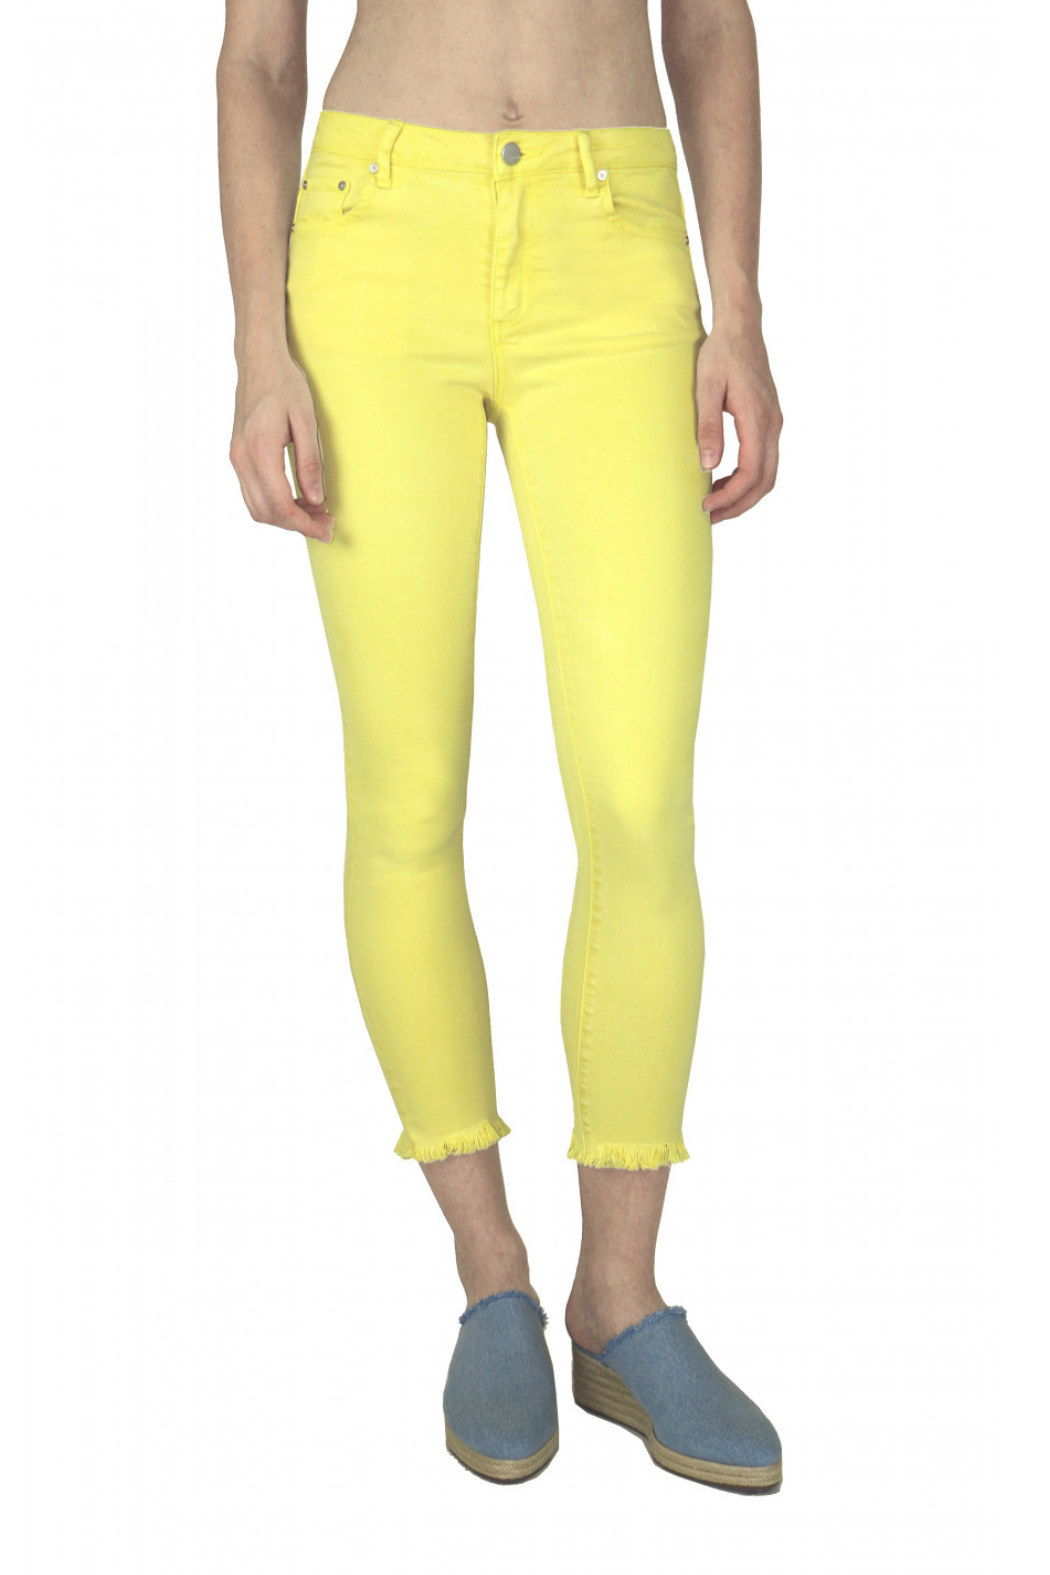 Tractr (New York Poplin) Lemon Zest Jeans - Main Image